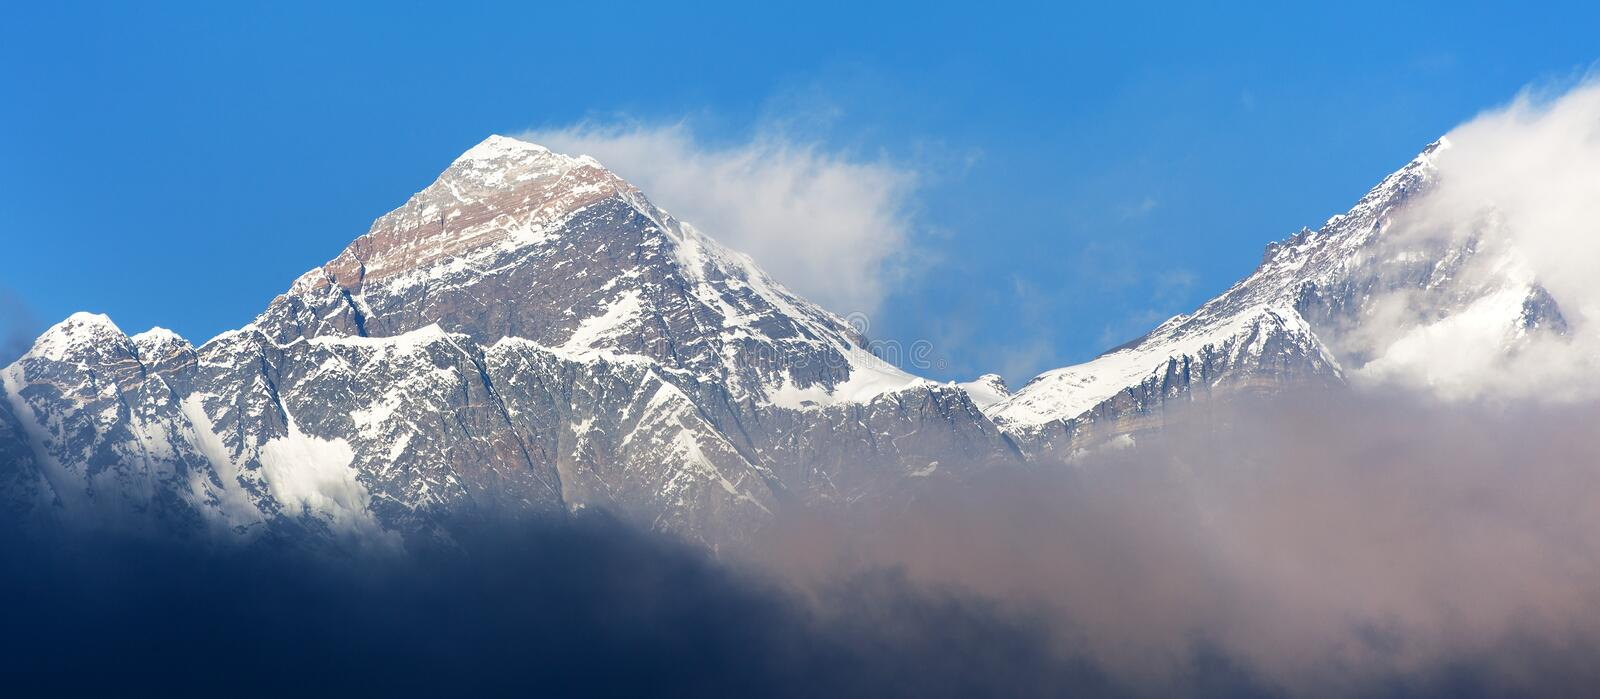 Evening sunset red colored view of Everest and Lhotse with beautiful clouds from Kongde village, Khumbu valley, Solukhumbu, Nepal royalty free stock photography